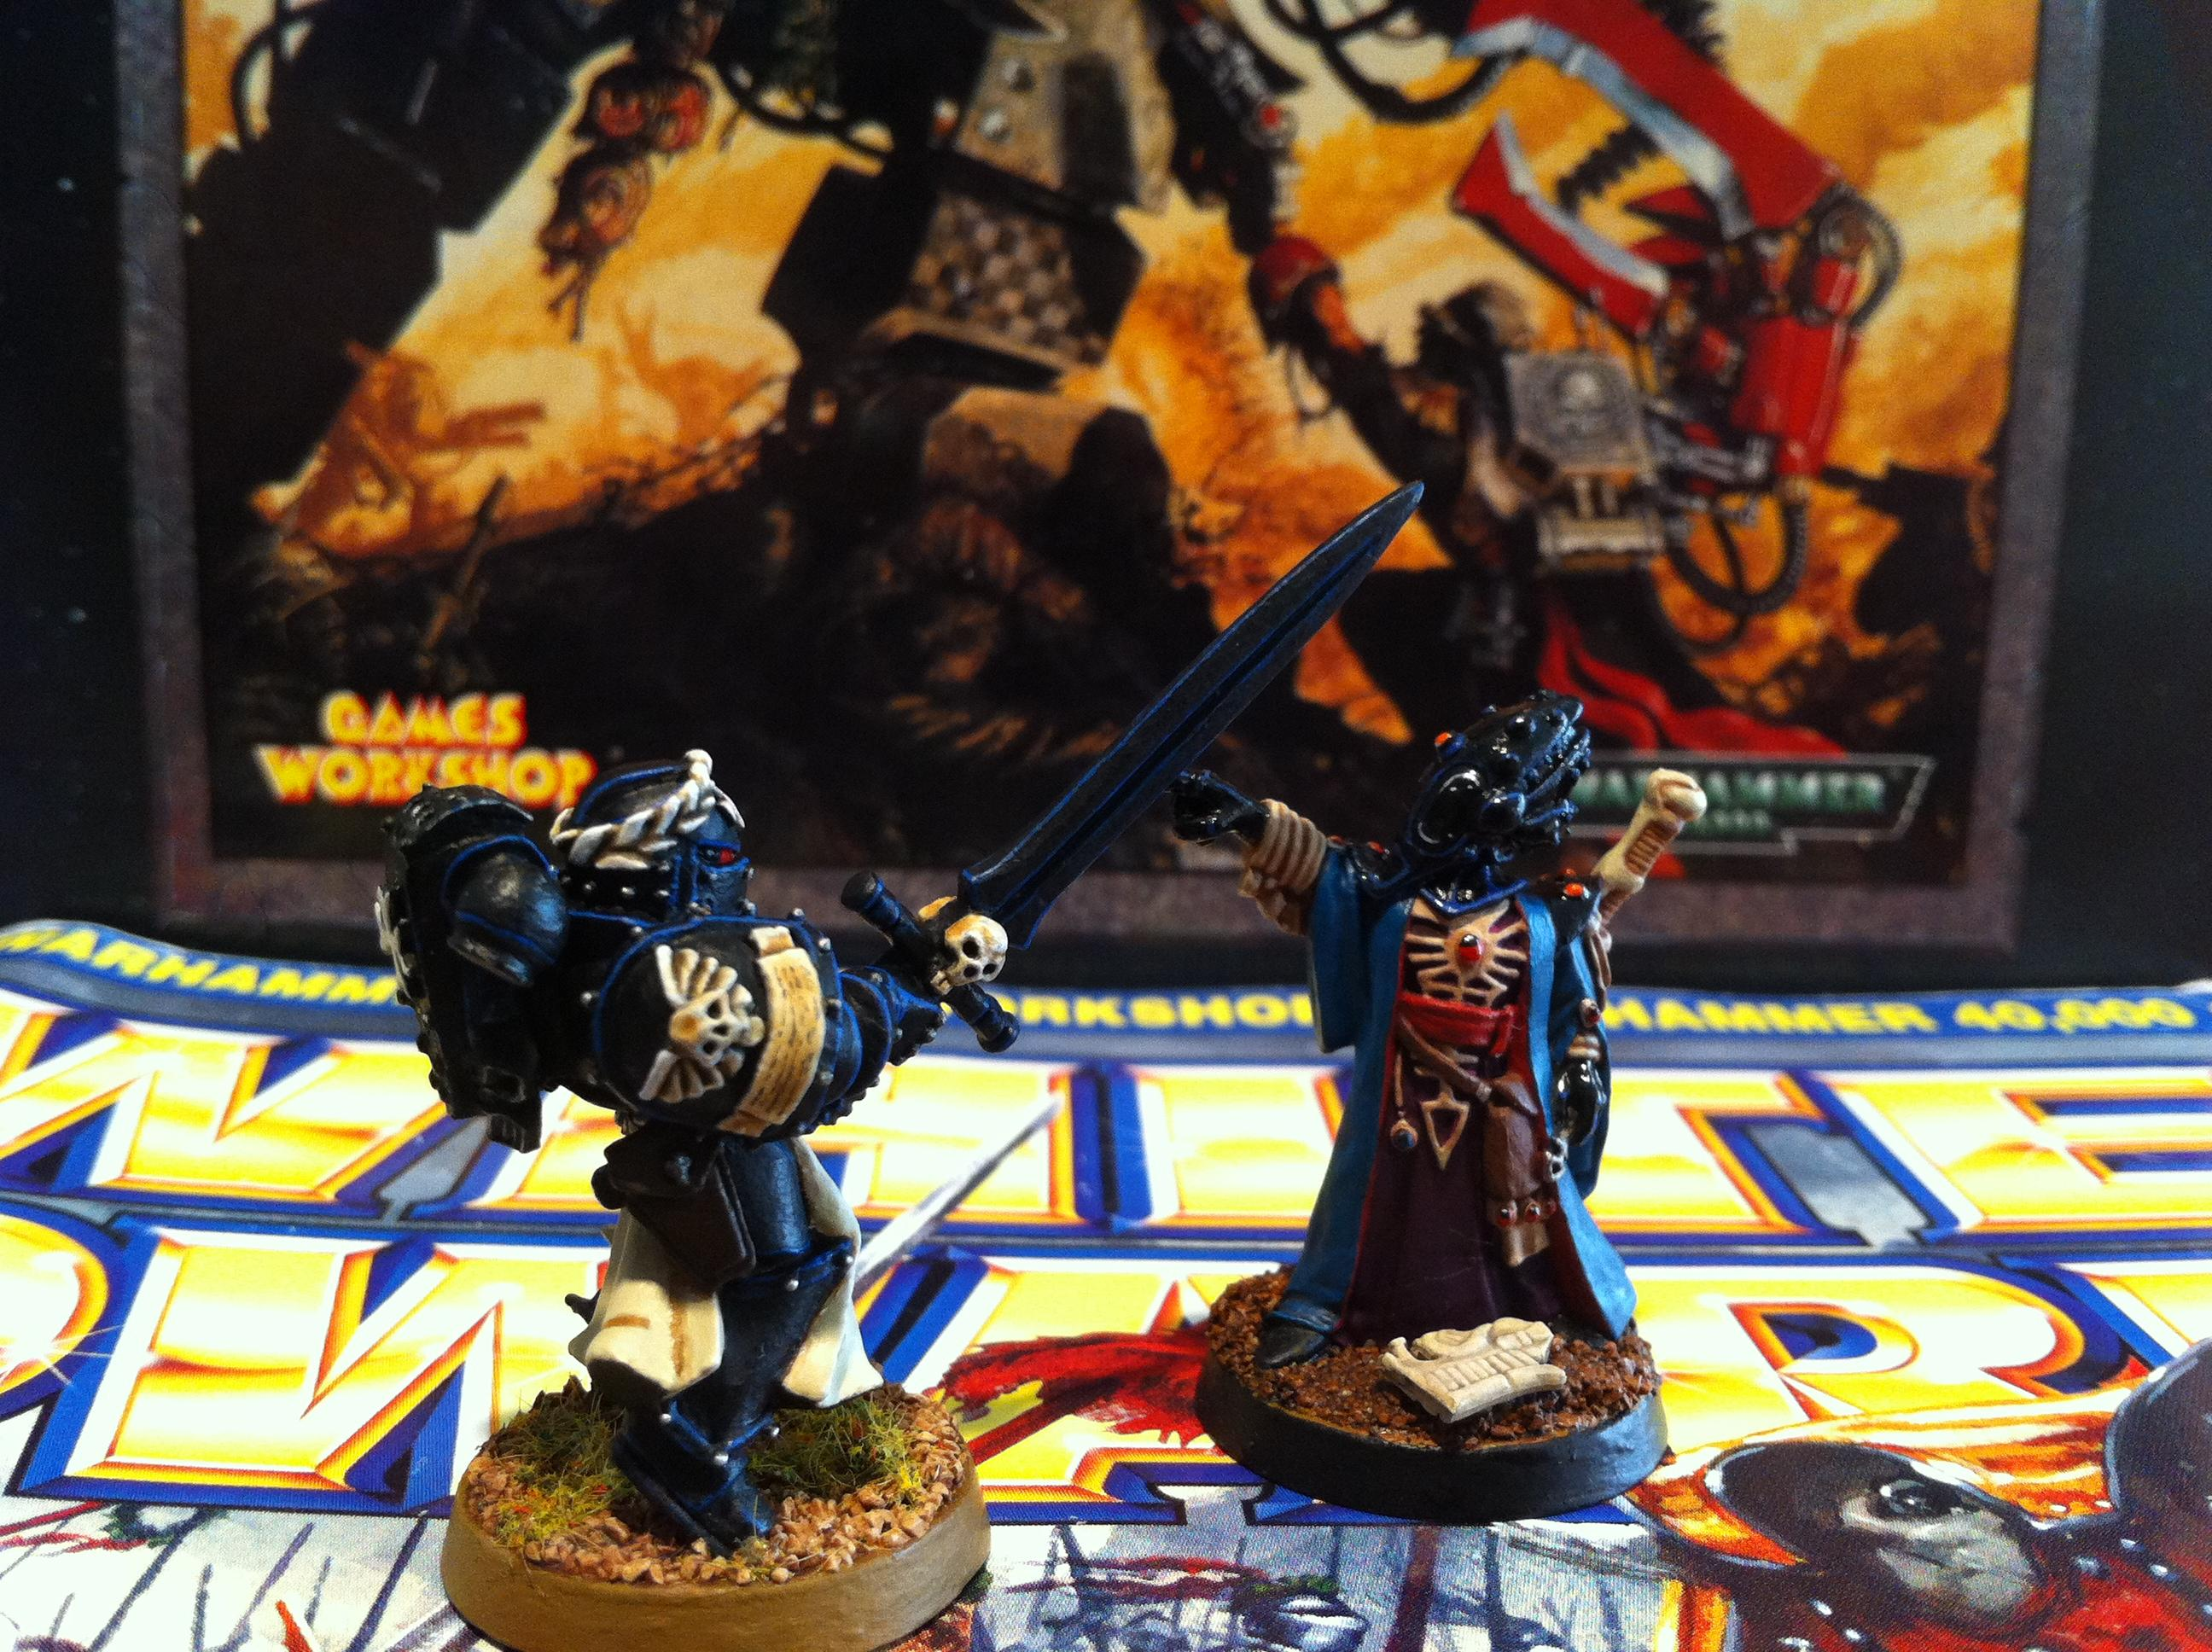 In the shadow of the ziggurat, a lethal duel is resolved..